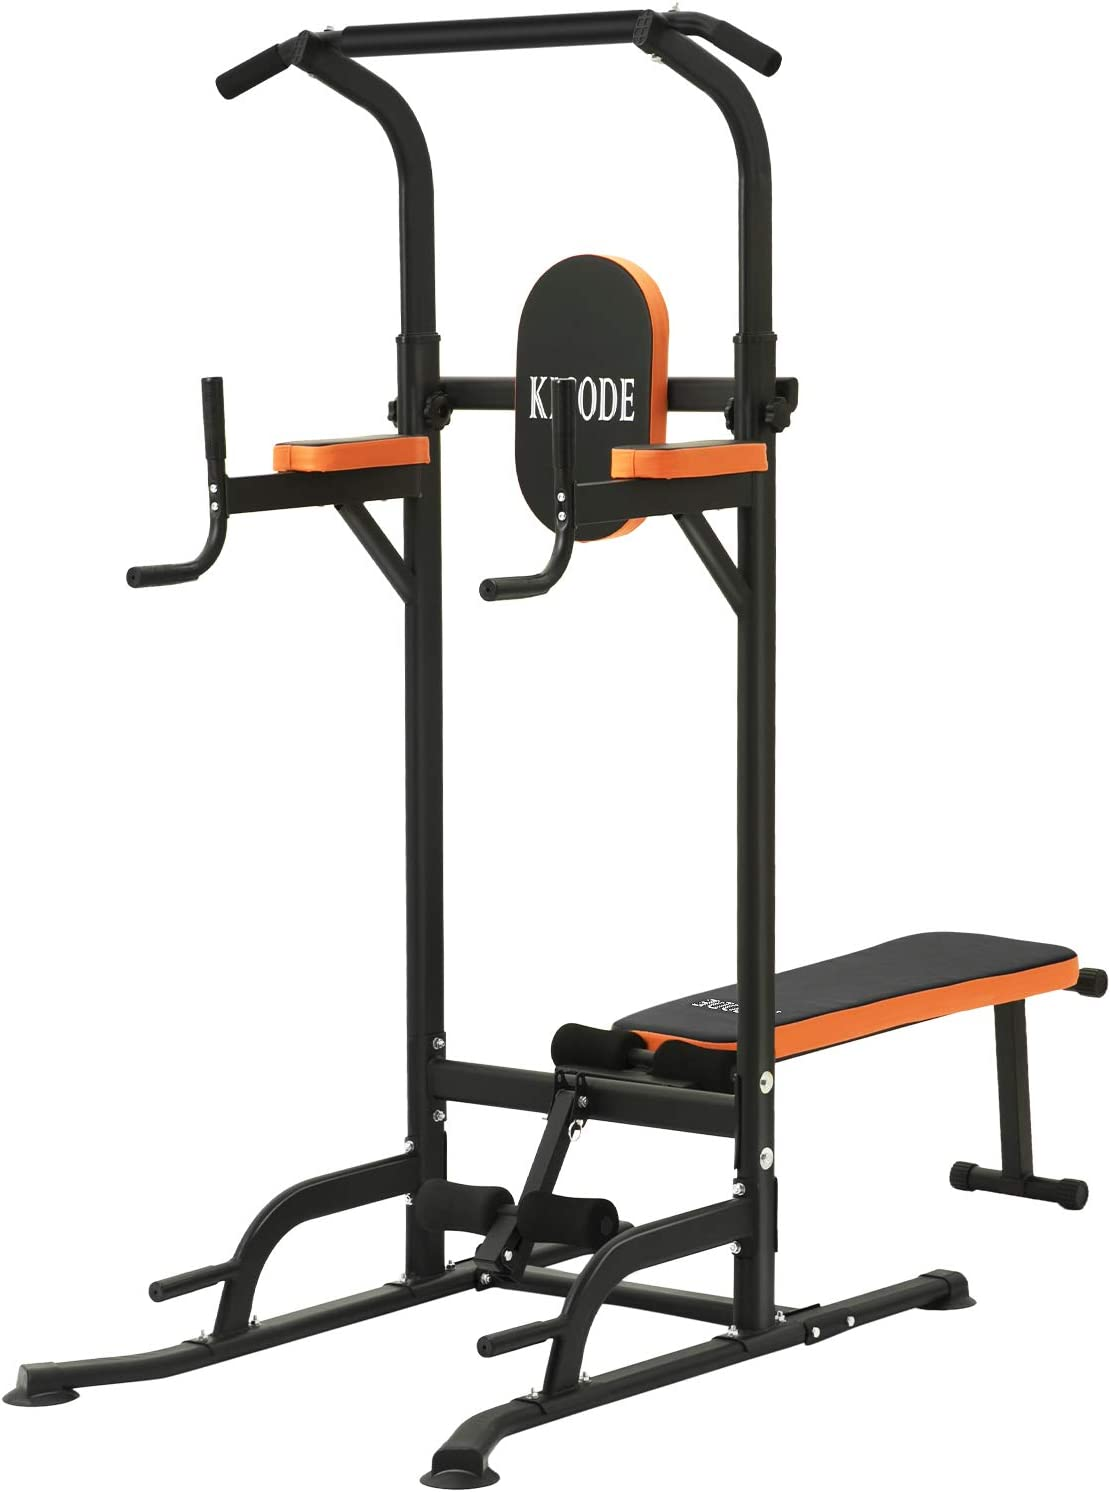 Kicode Power Tower, Workout Dip Station with Sit up Bench, Home Gym Pull Up Bar Dip Station